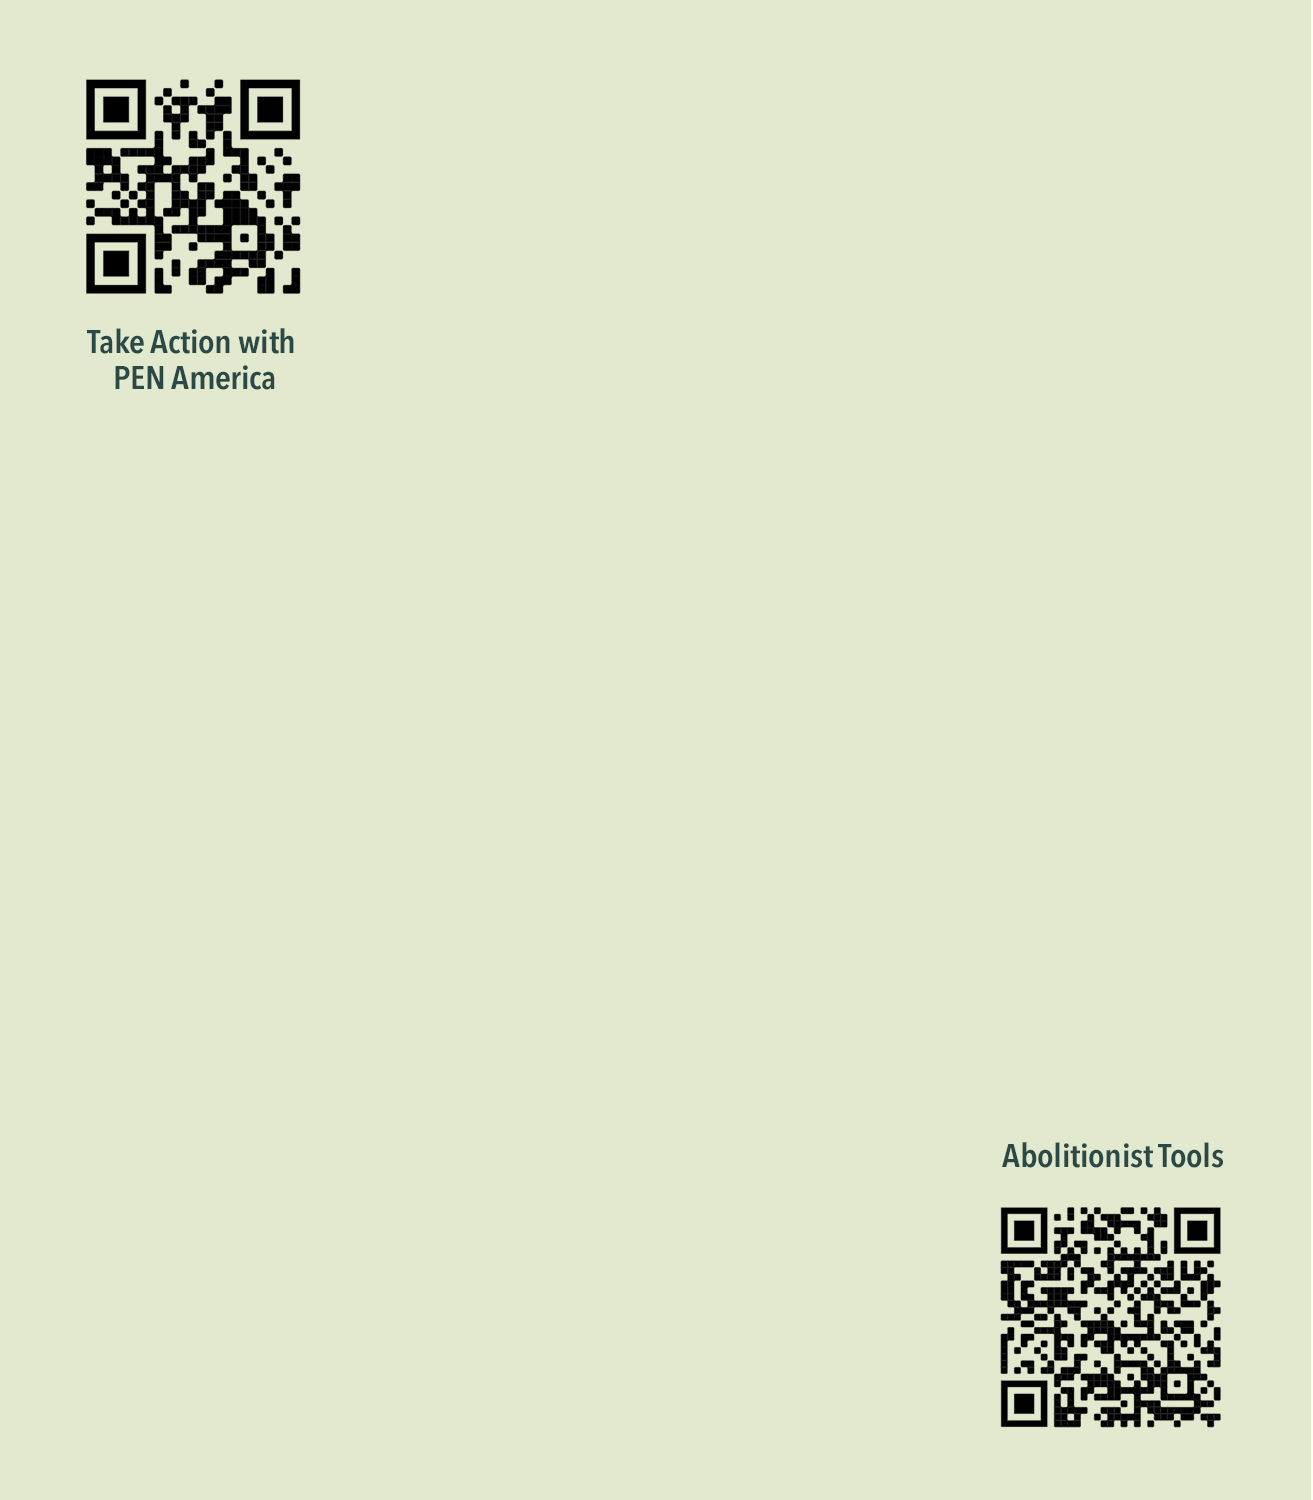 QR code in top left and bottom right corner. The words